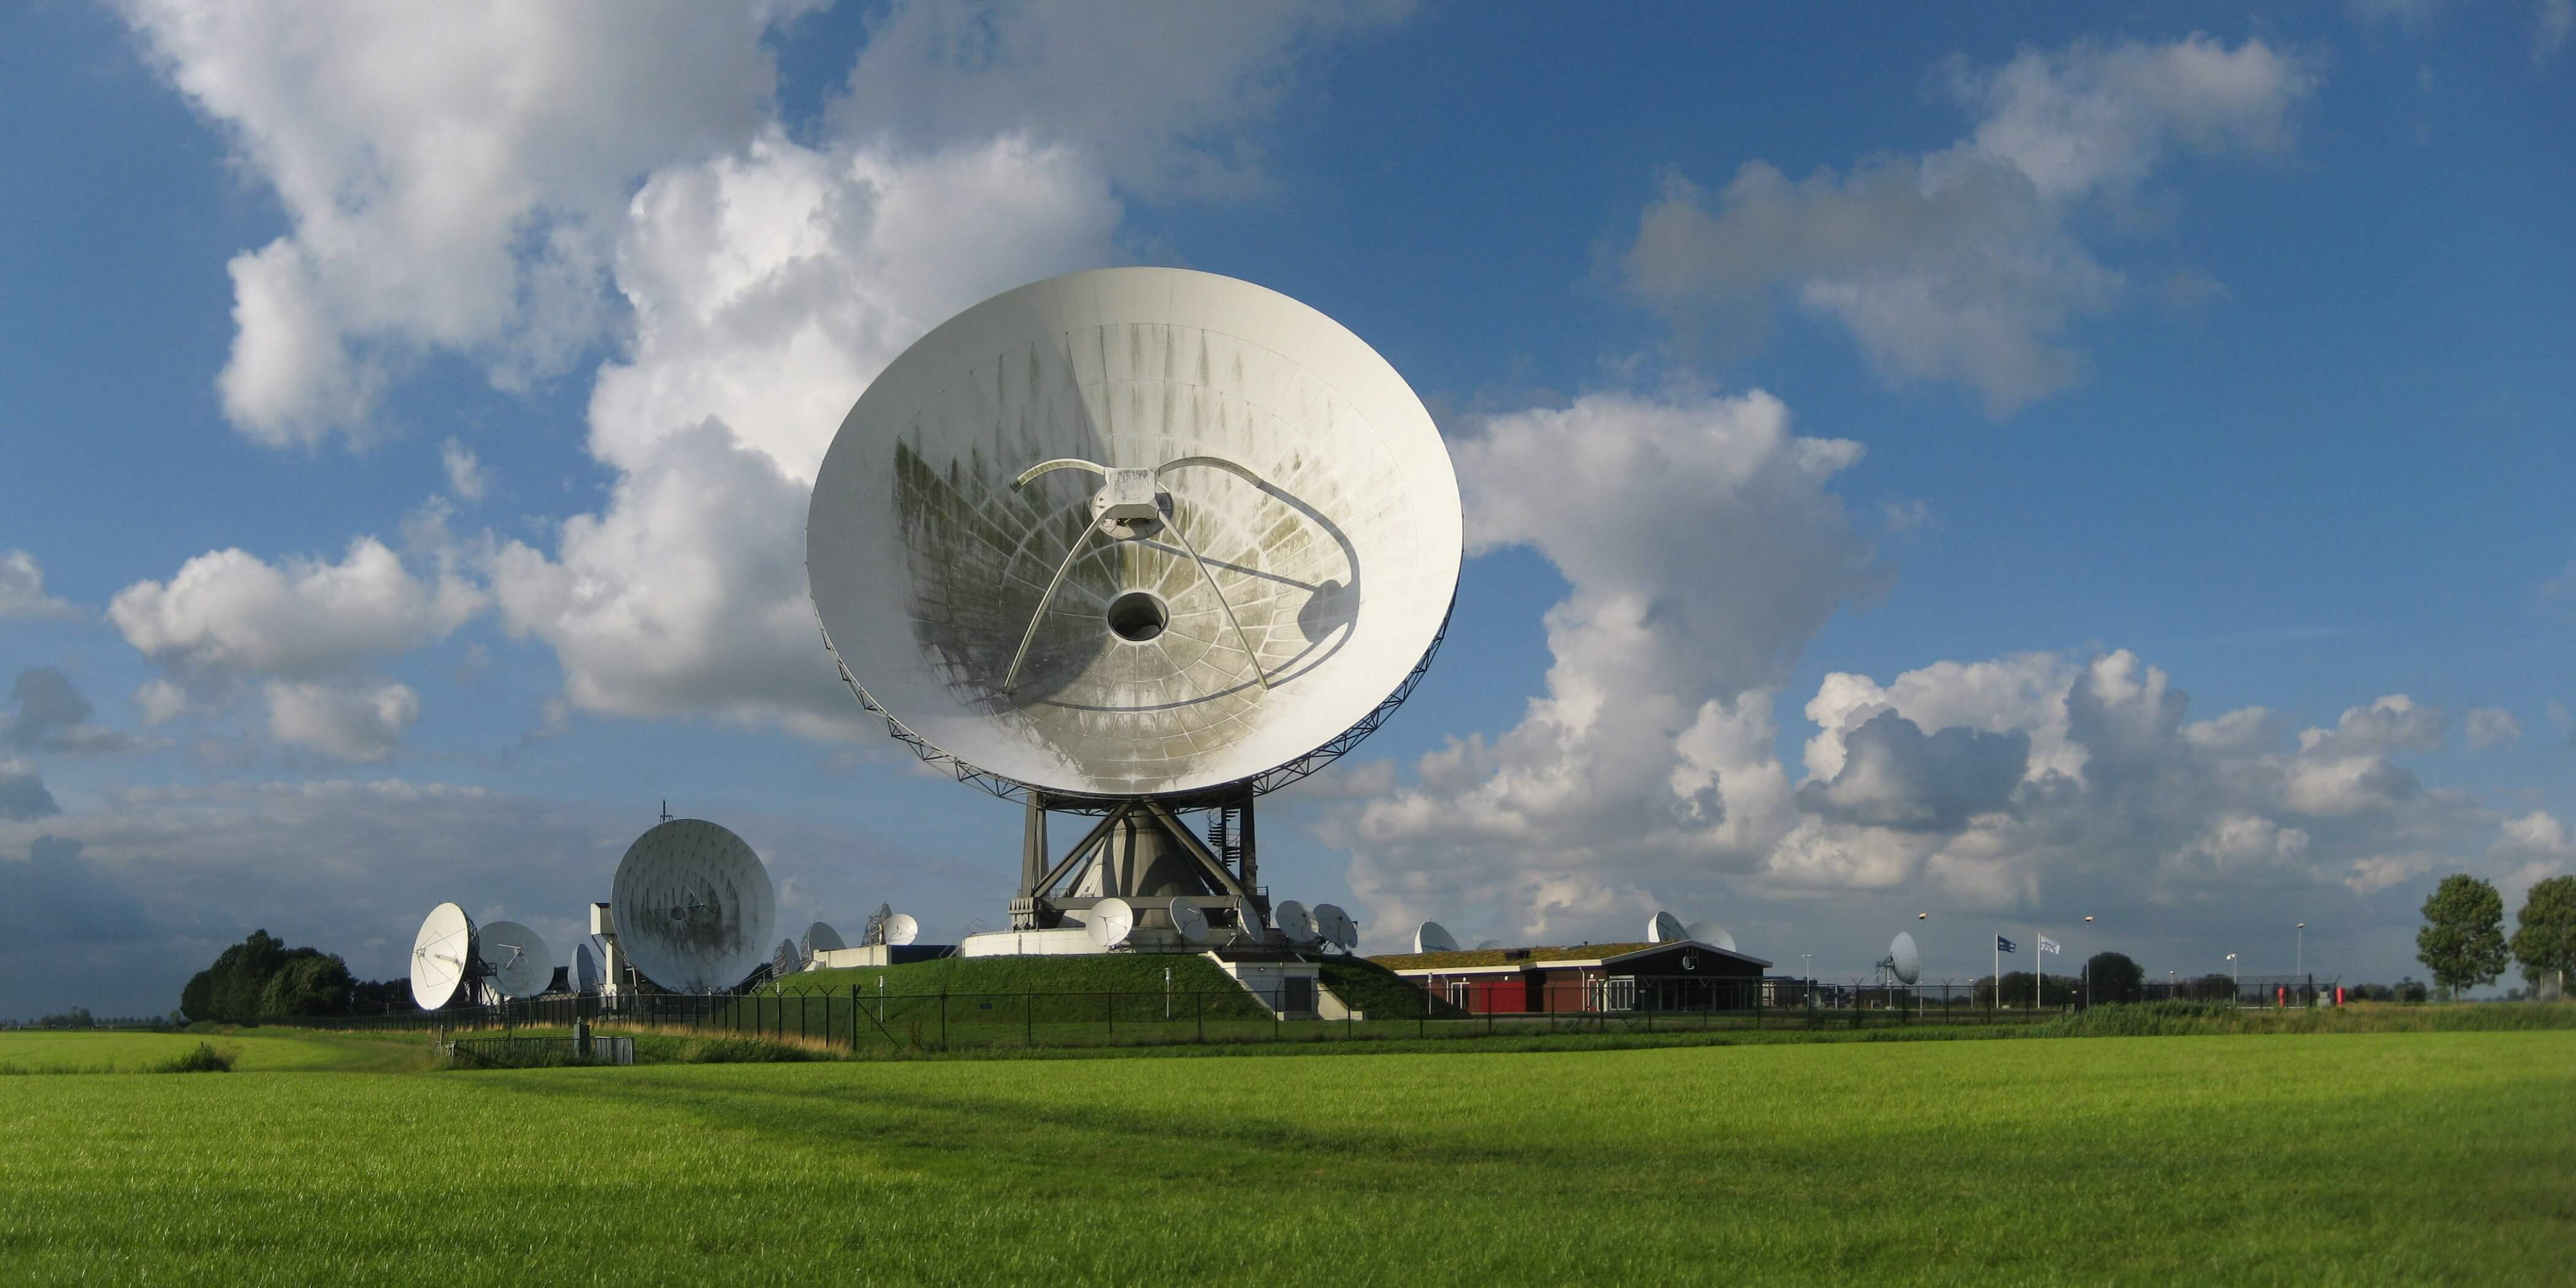 Satellietgrondstation van de Nationale SIGINT Organisatie (NSO) bij Burum, Friesland in 2012. © Wutsje / Wikimedia Commons / CC BY-SA 3.0